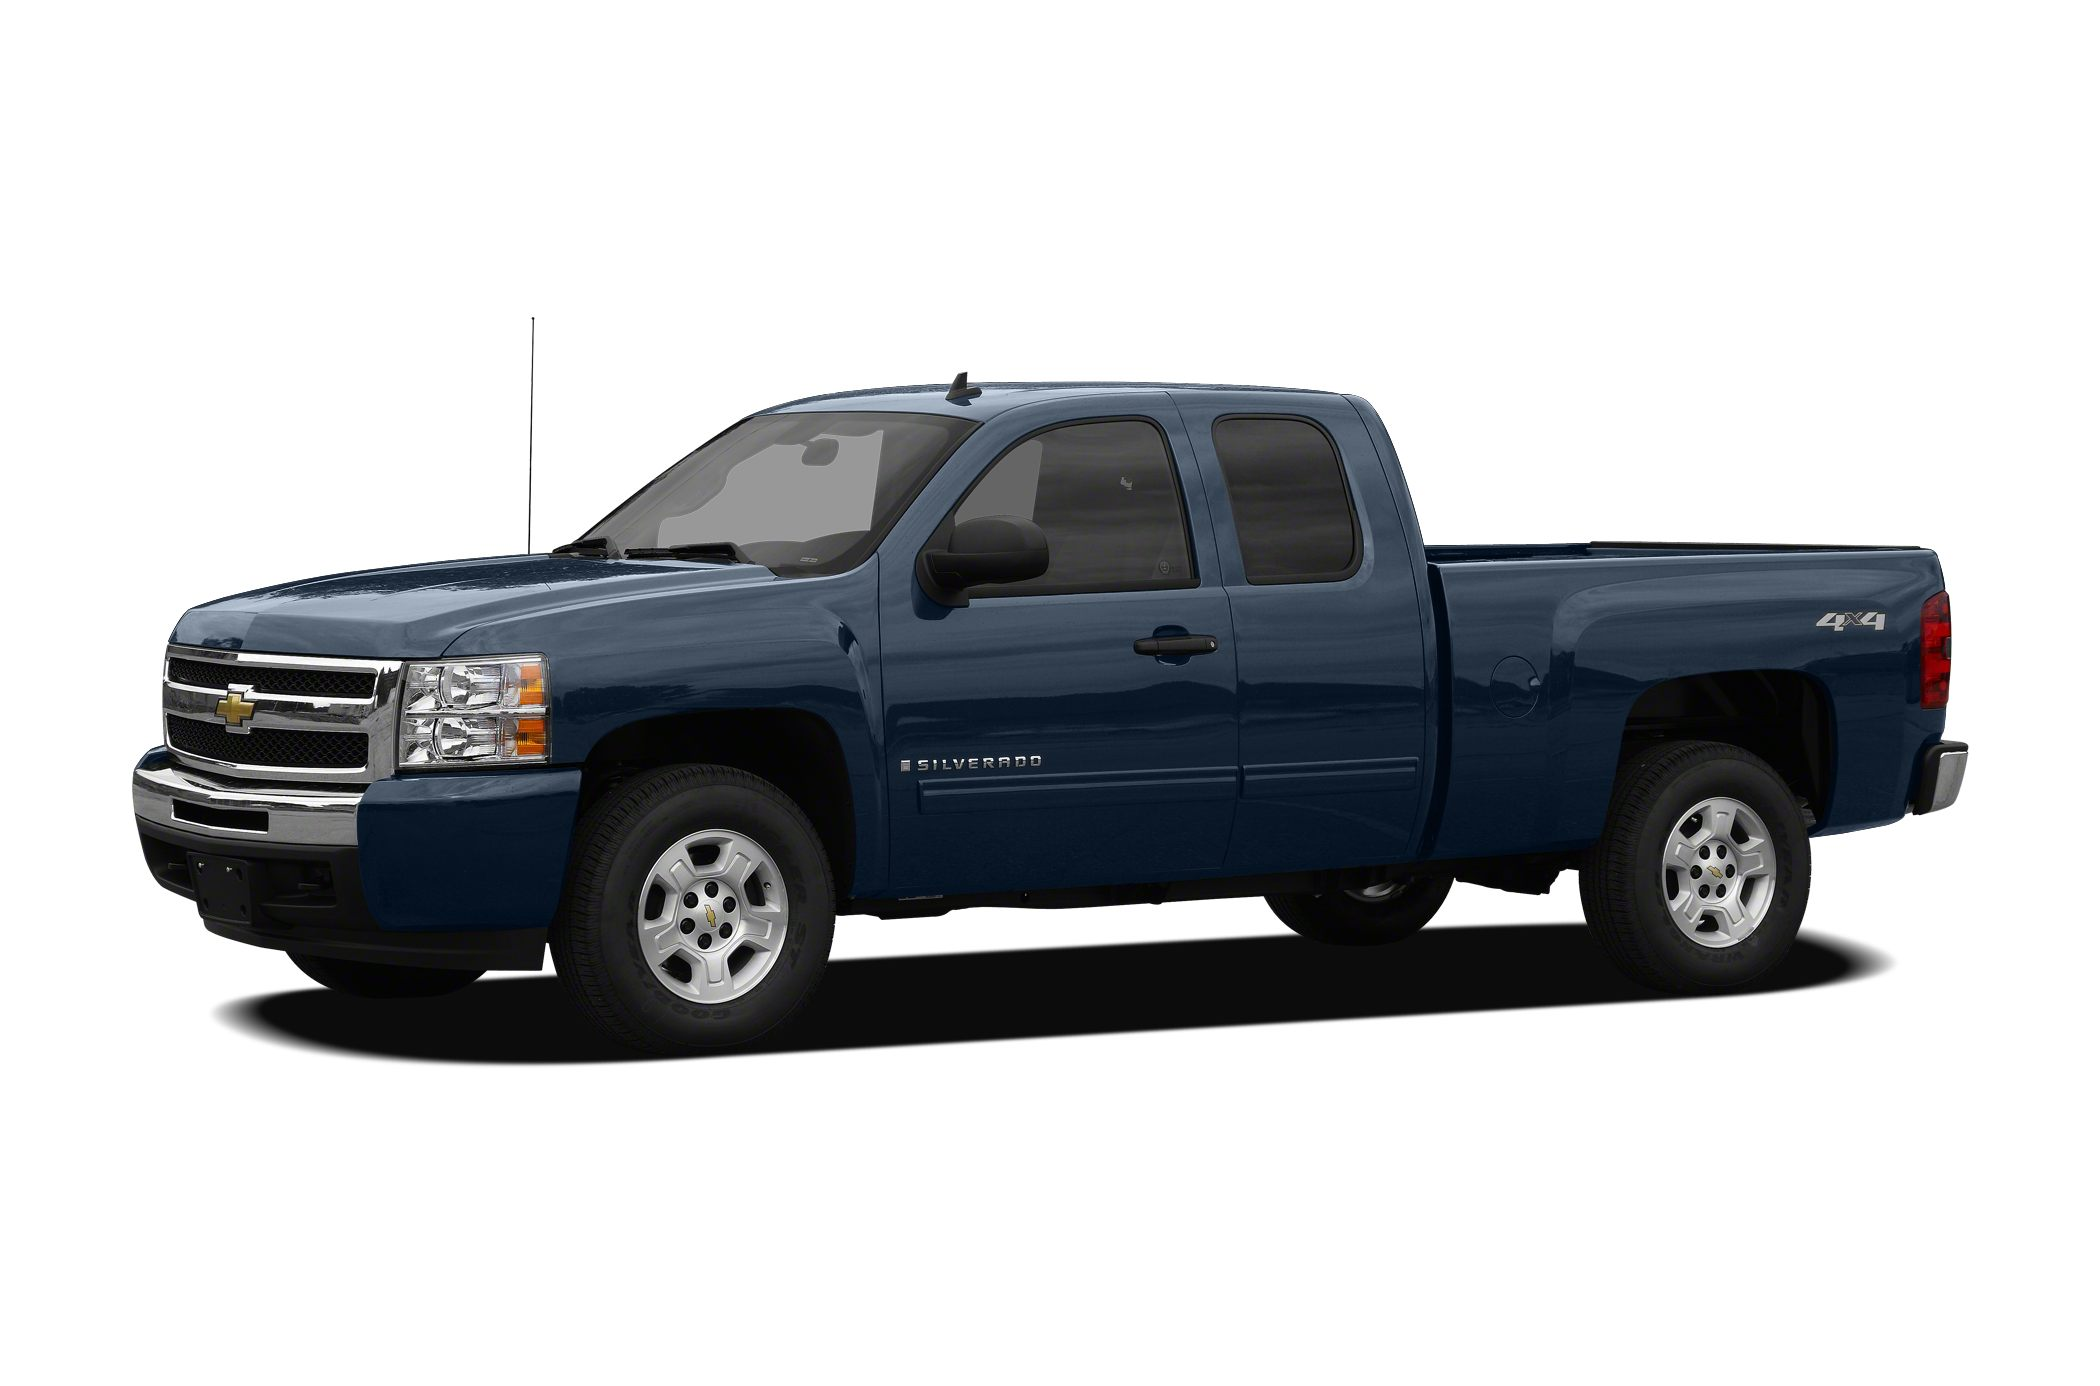 2011 Chevrolet Silverado 1500 LT Miles 84750Color Blue Stock 20013 VIN 1GCRKSE30BZ425393